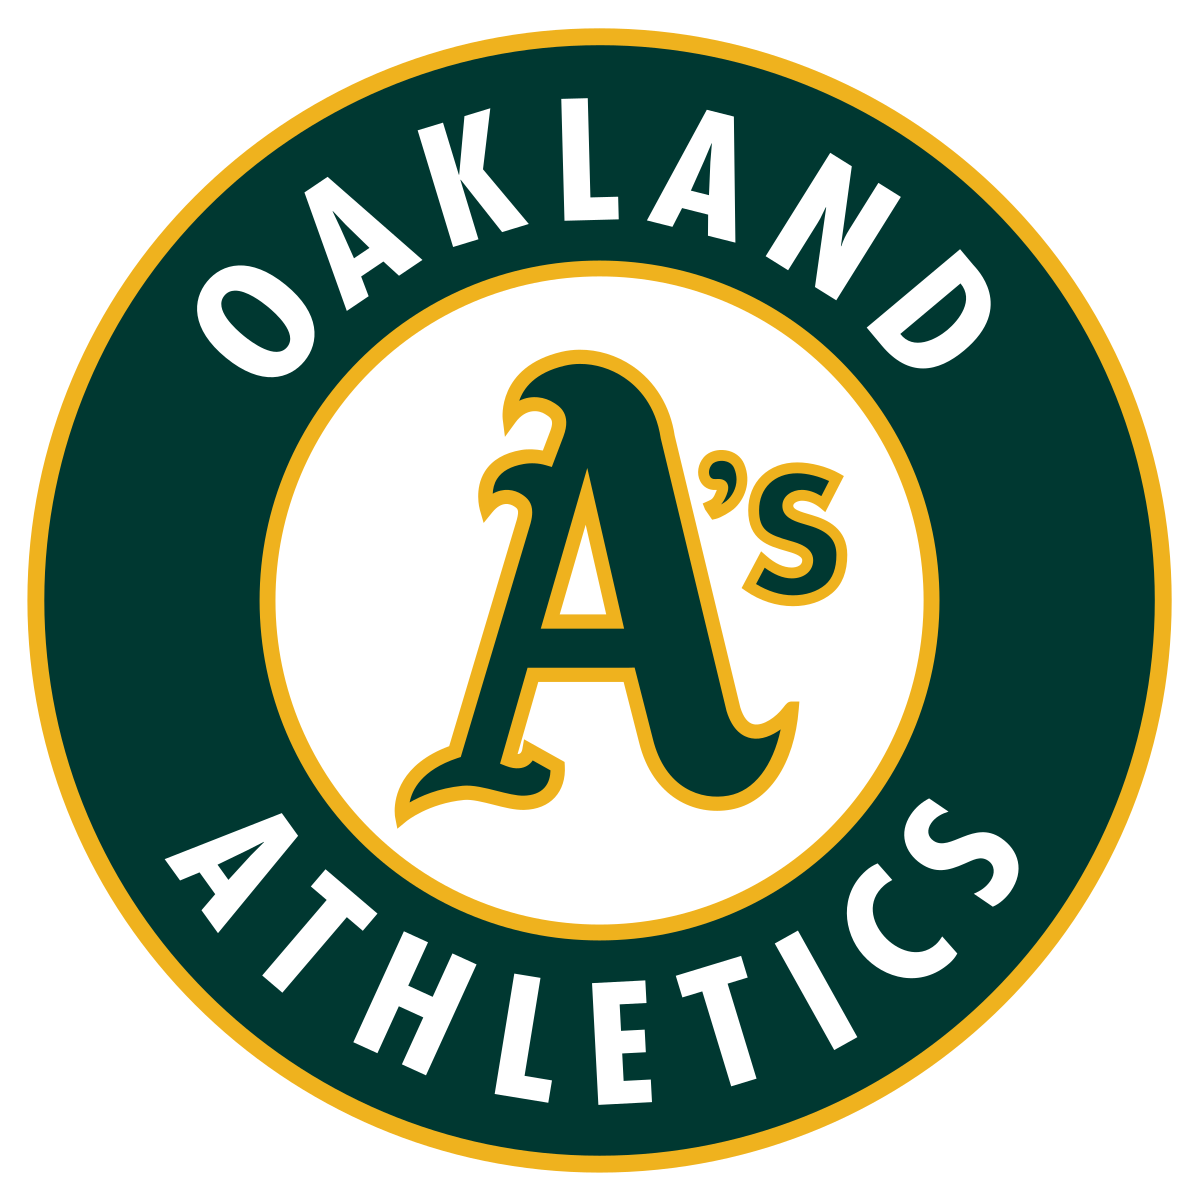 Oakland athletics wikipedia . Dodgers svg thank you graphic freeuse library